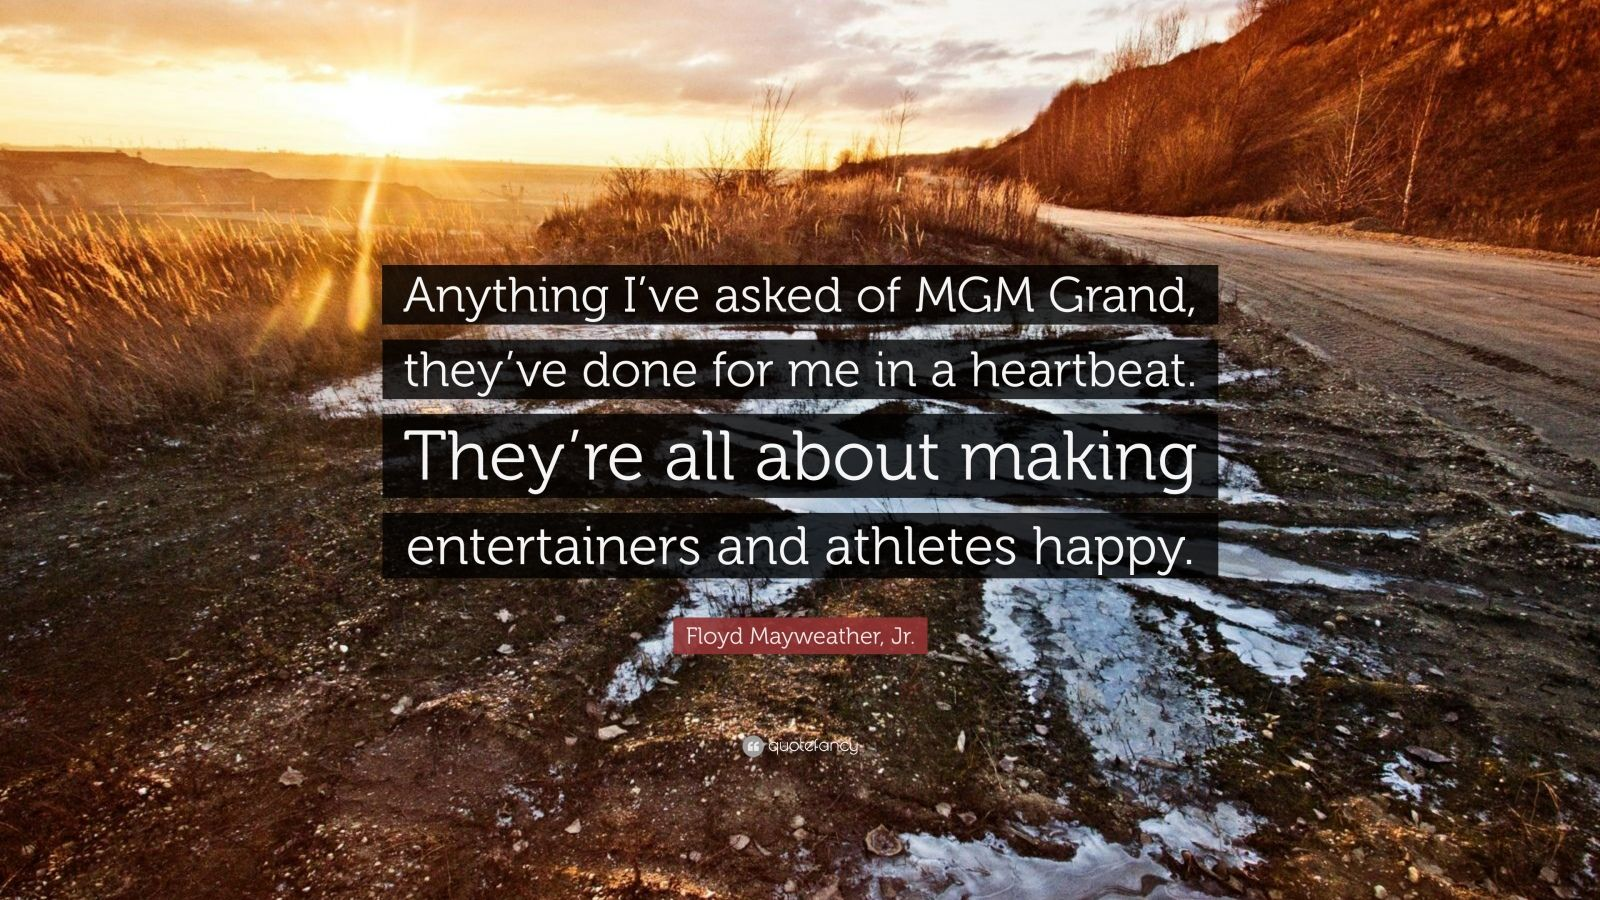 """Floyd Mayweather, Jr. Quote: """"Anything I've asked of MGM Grand, they've done for me in a heartbeat. They're all about making entertainers and athletes happy."""""""